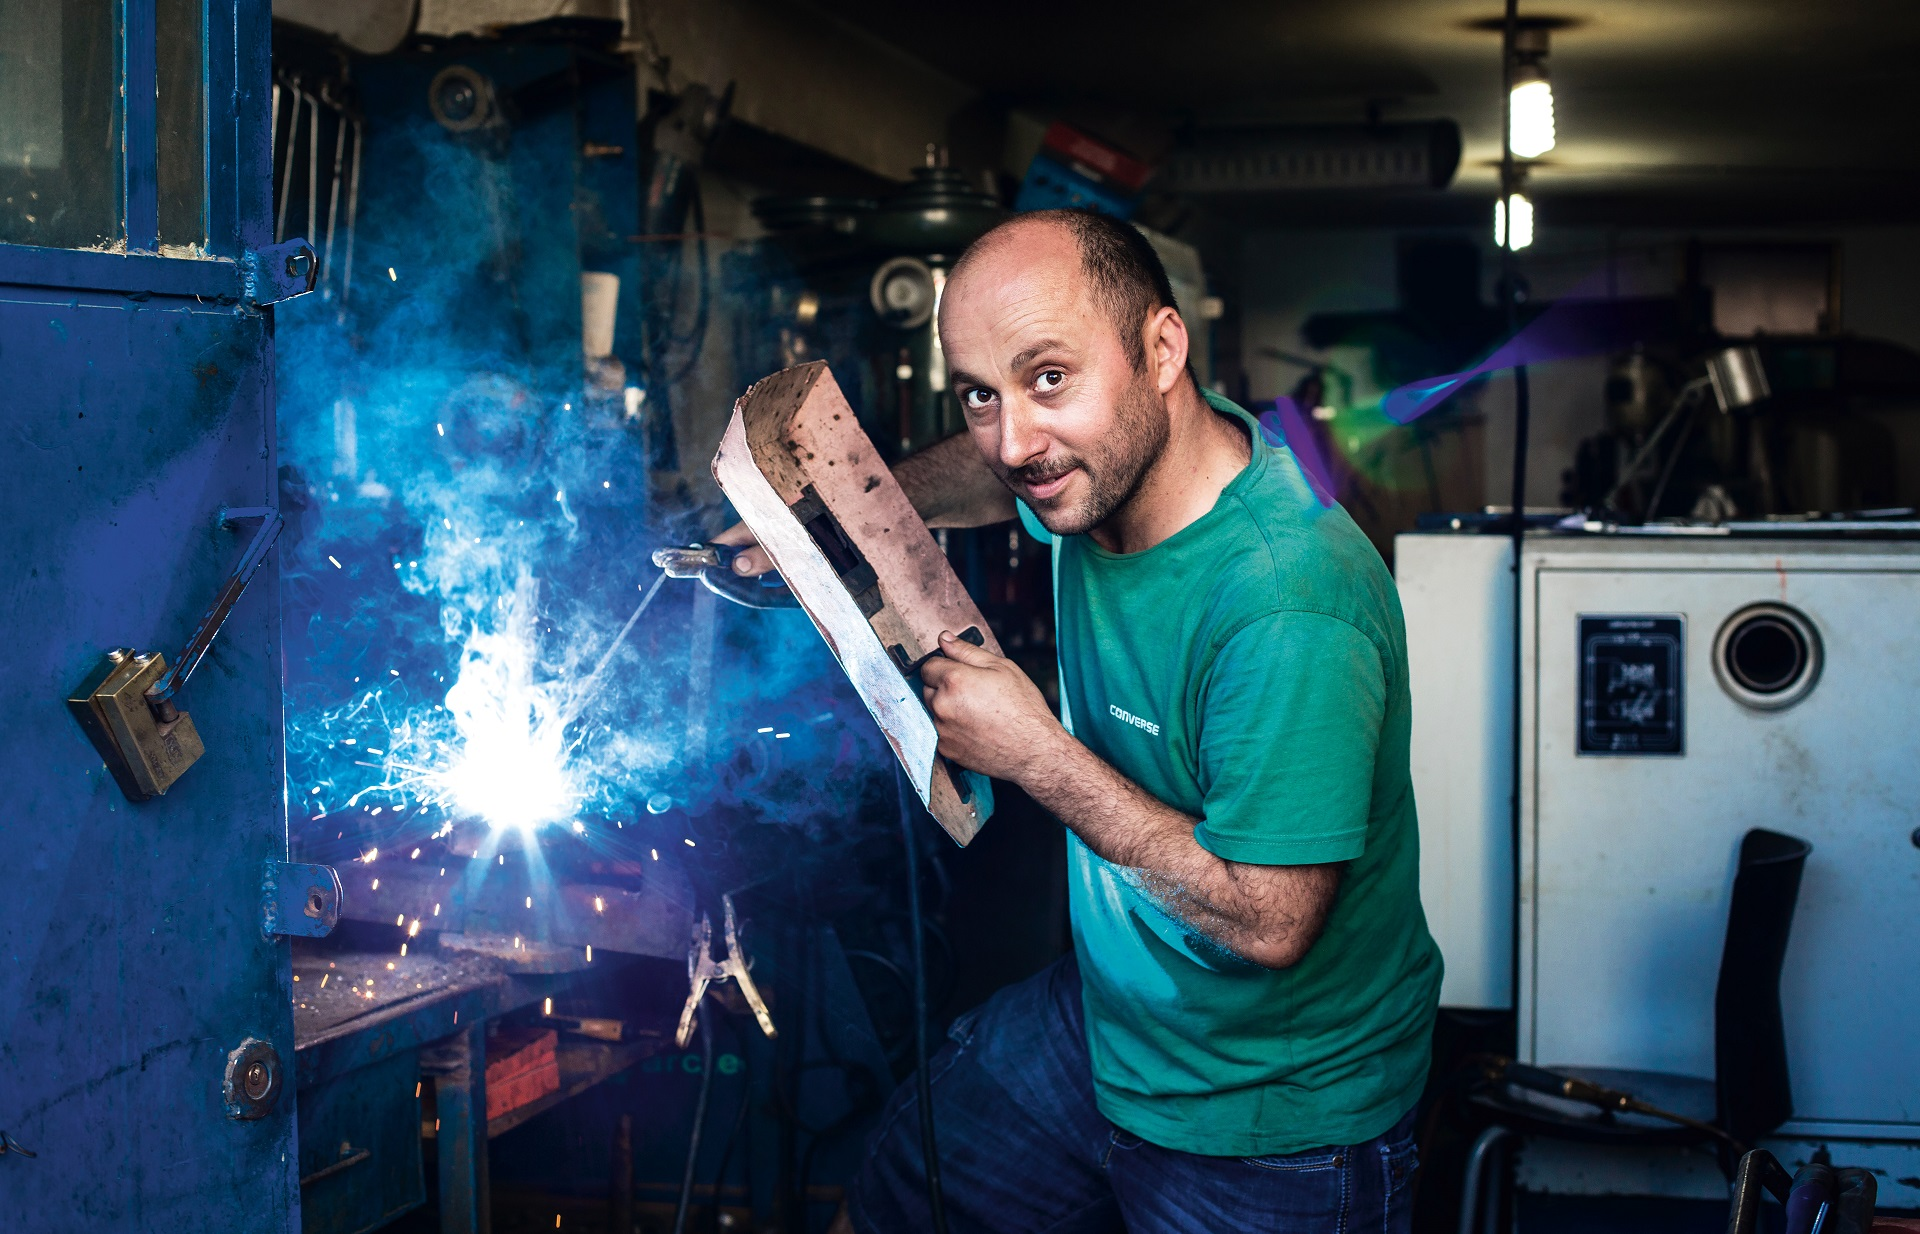 How Affordable Is It For Entrepreneurs To Start a Welding Business in America?